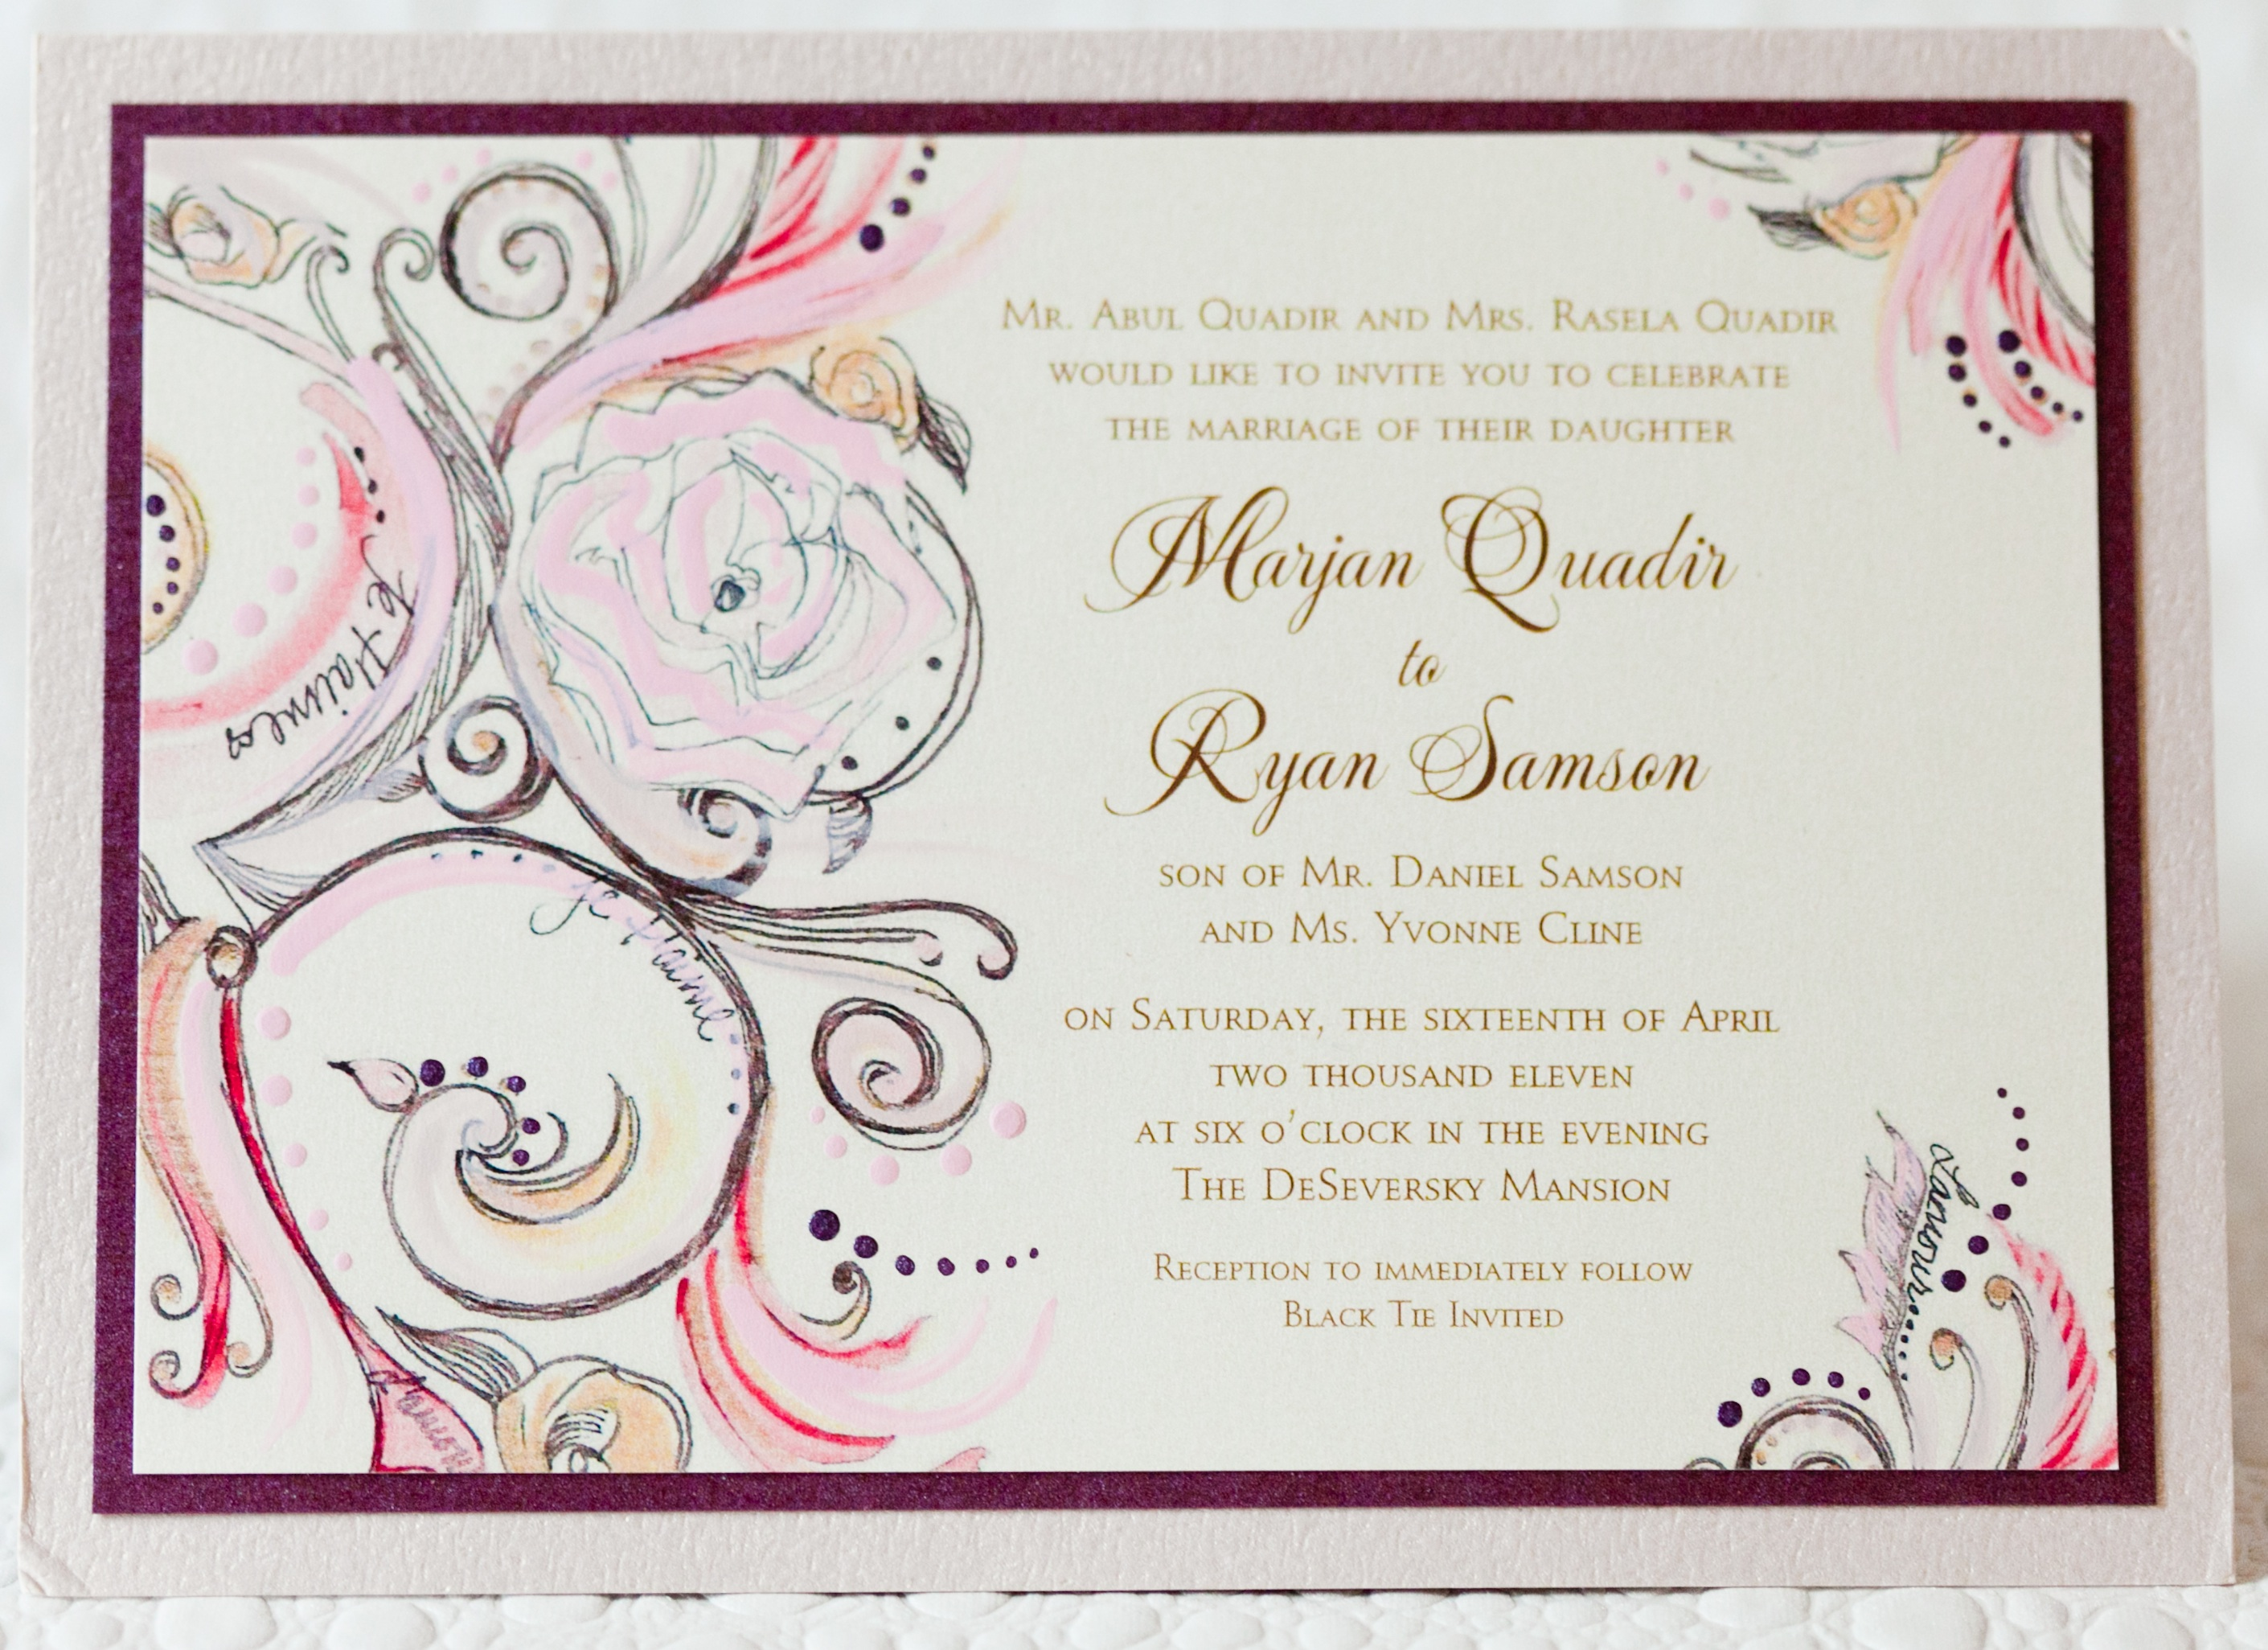 Discover How Font Style Makes An Impact On Invitations